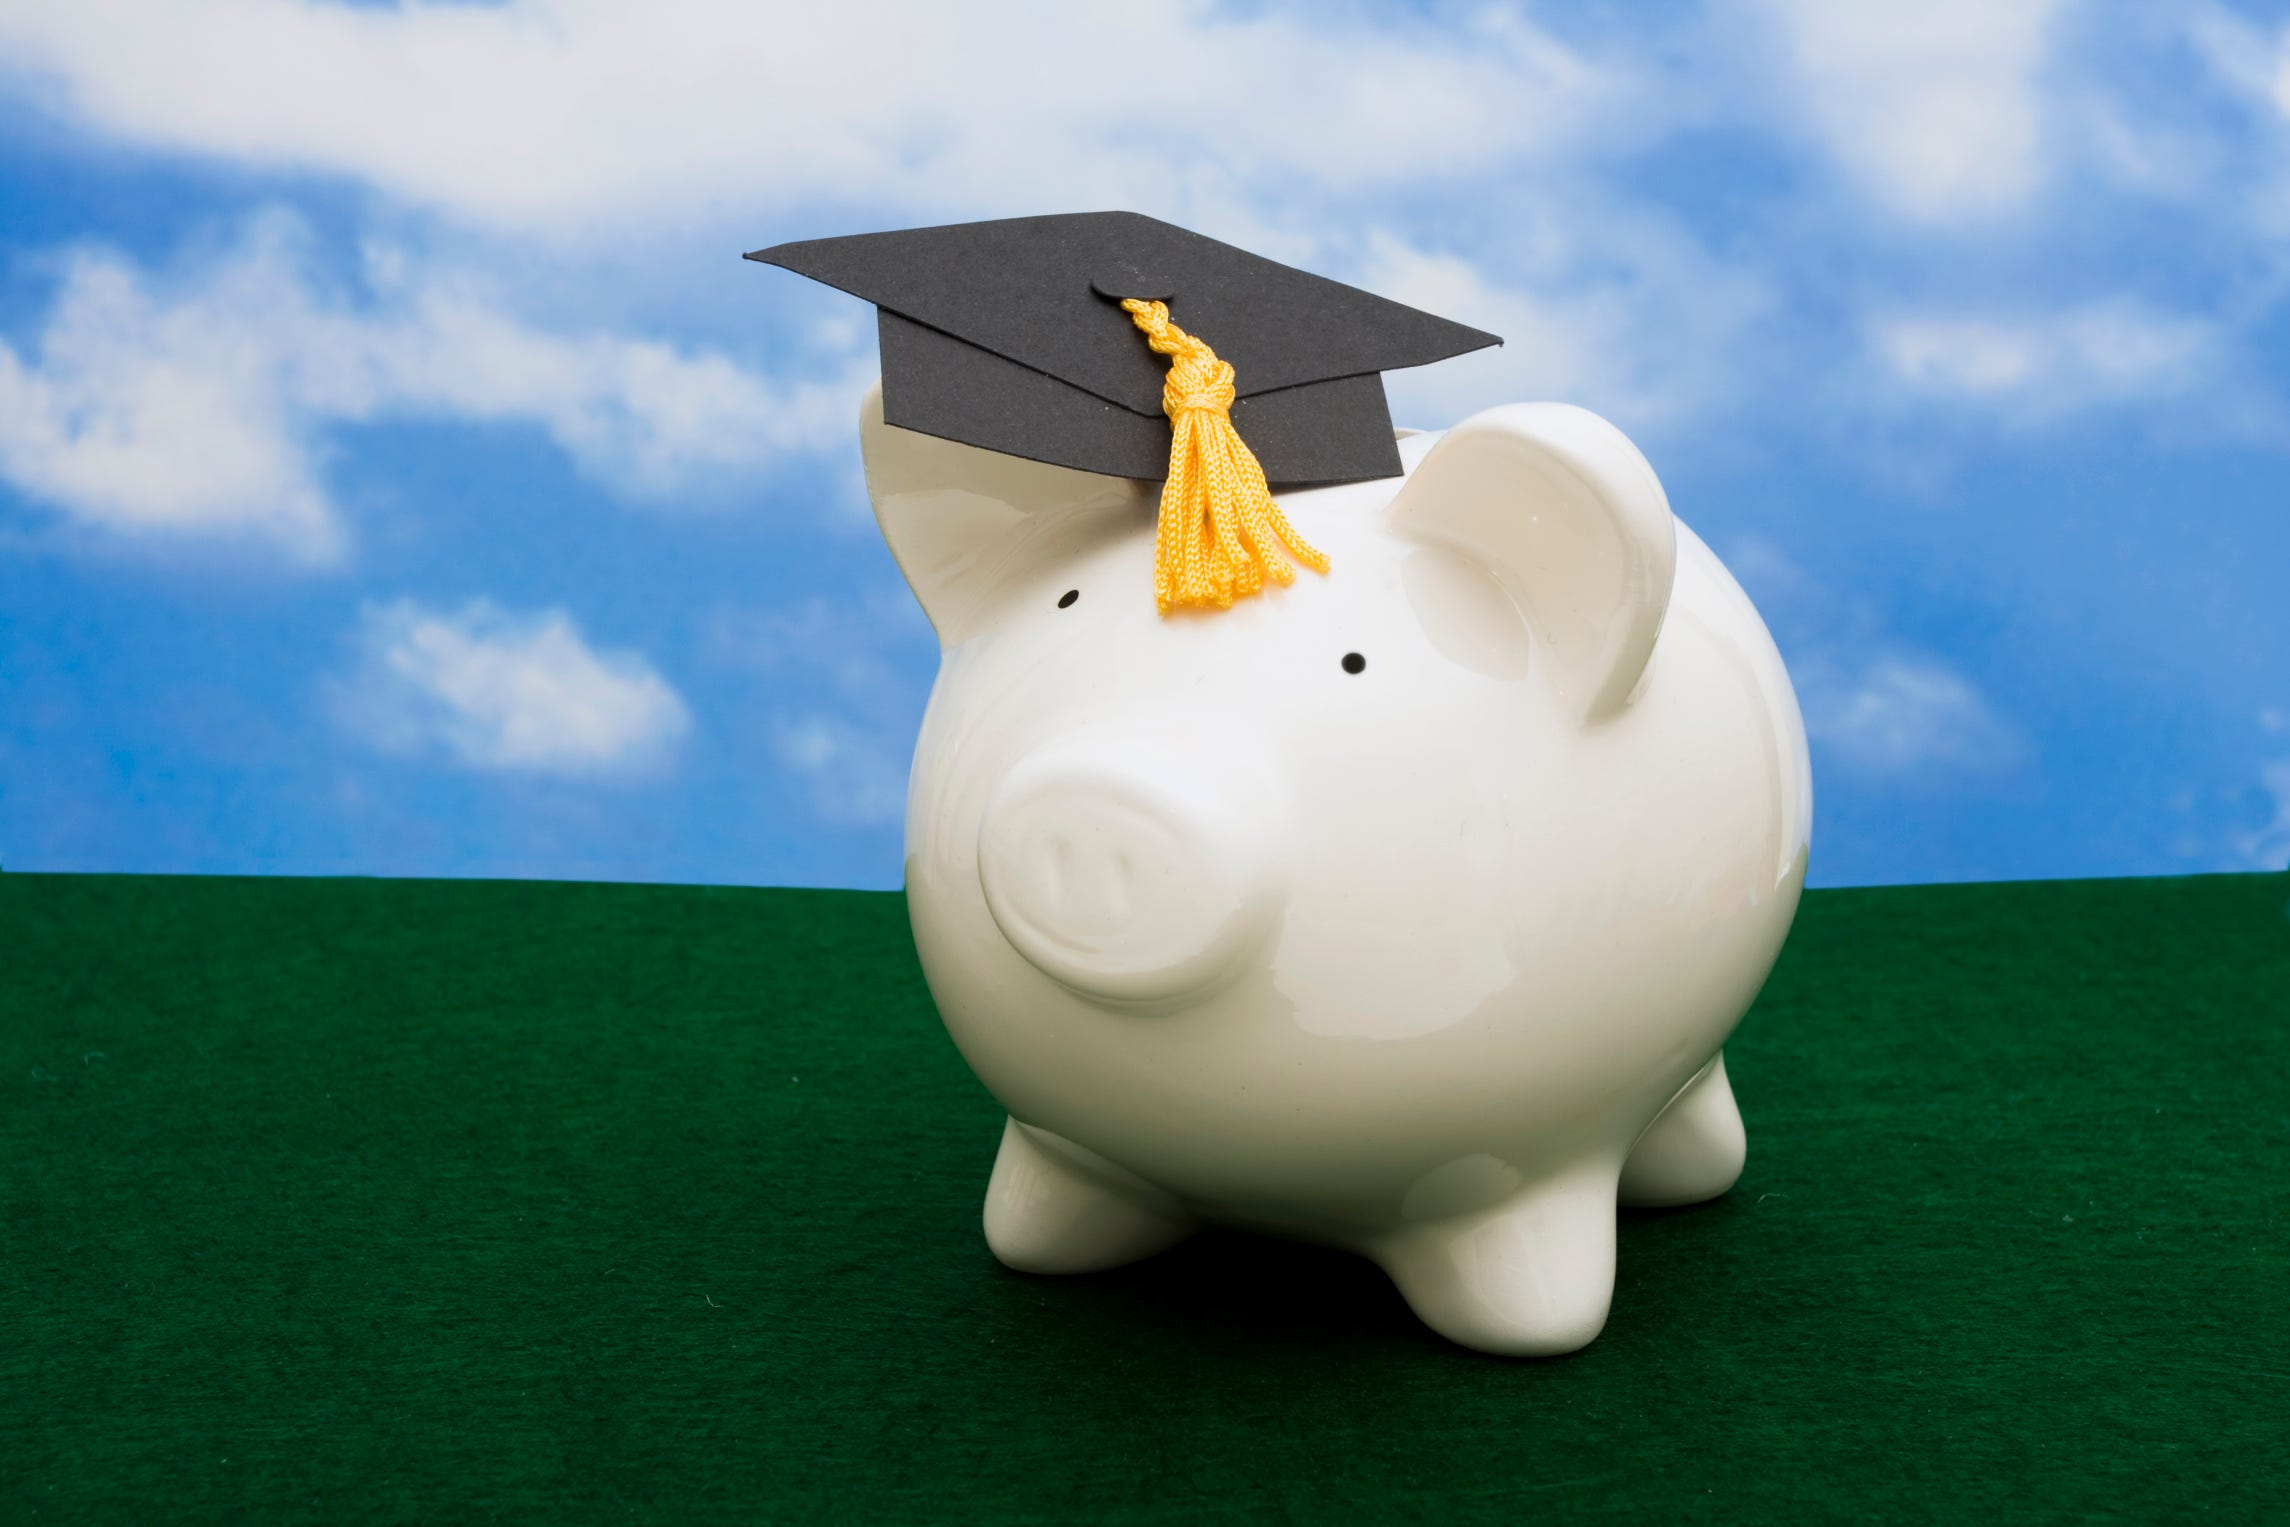 Top 10 financial tips for the class of 2015